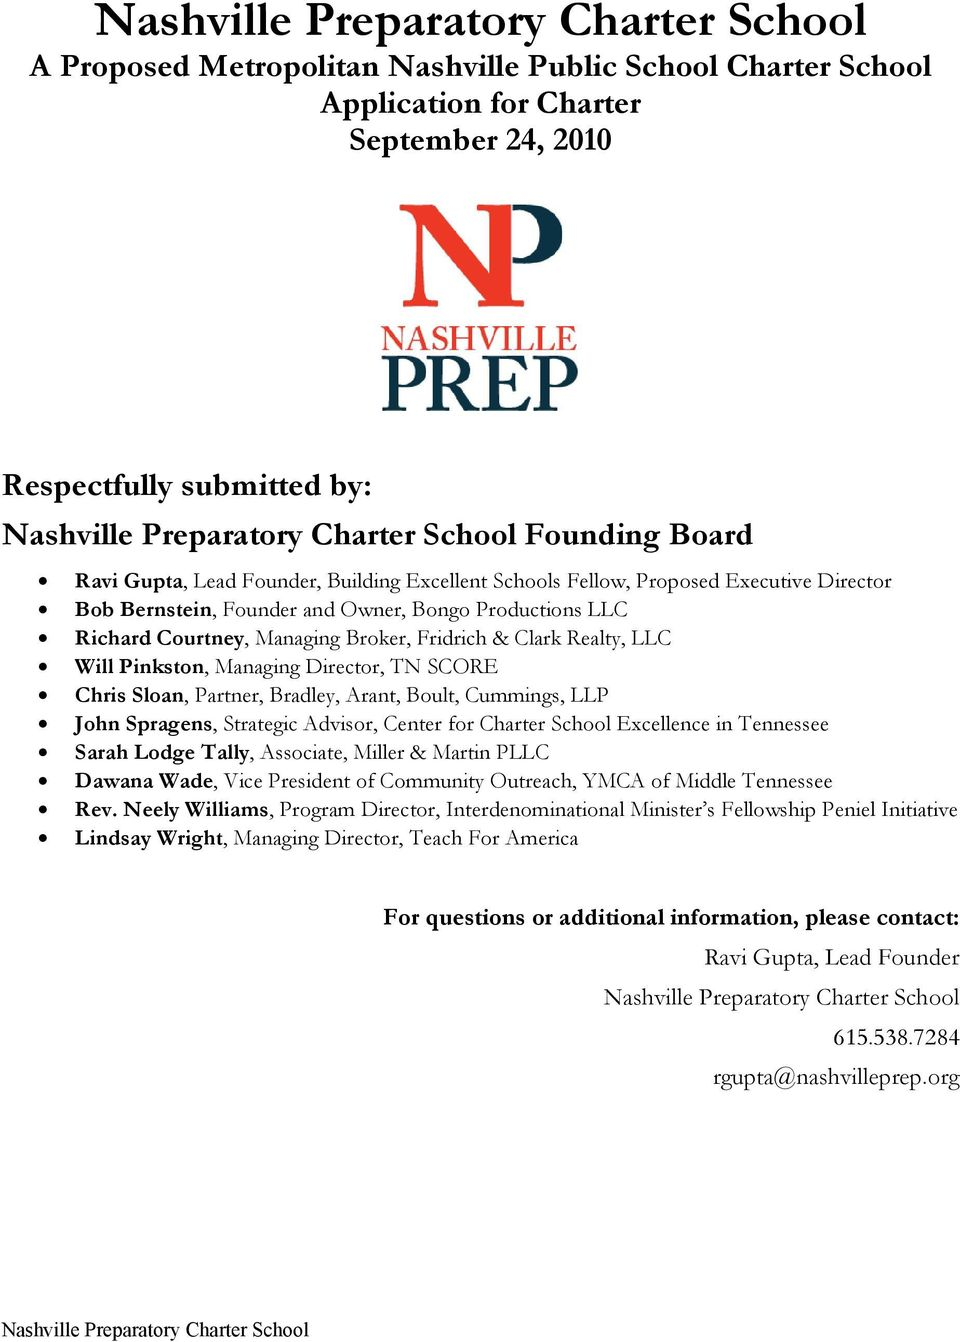 TN SCORE Chris Sloan, Partner, Bradley, Arant, Boult, Cummings, LLP John Spragens, Strategic Advisor, Center for Charter School Excellence in Tennessee Sarah Lodge Tally, Associate, Miller & Martin